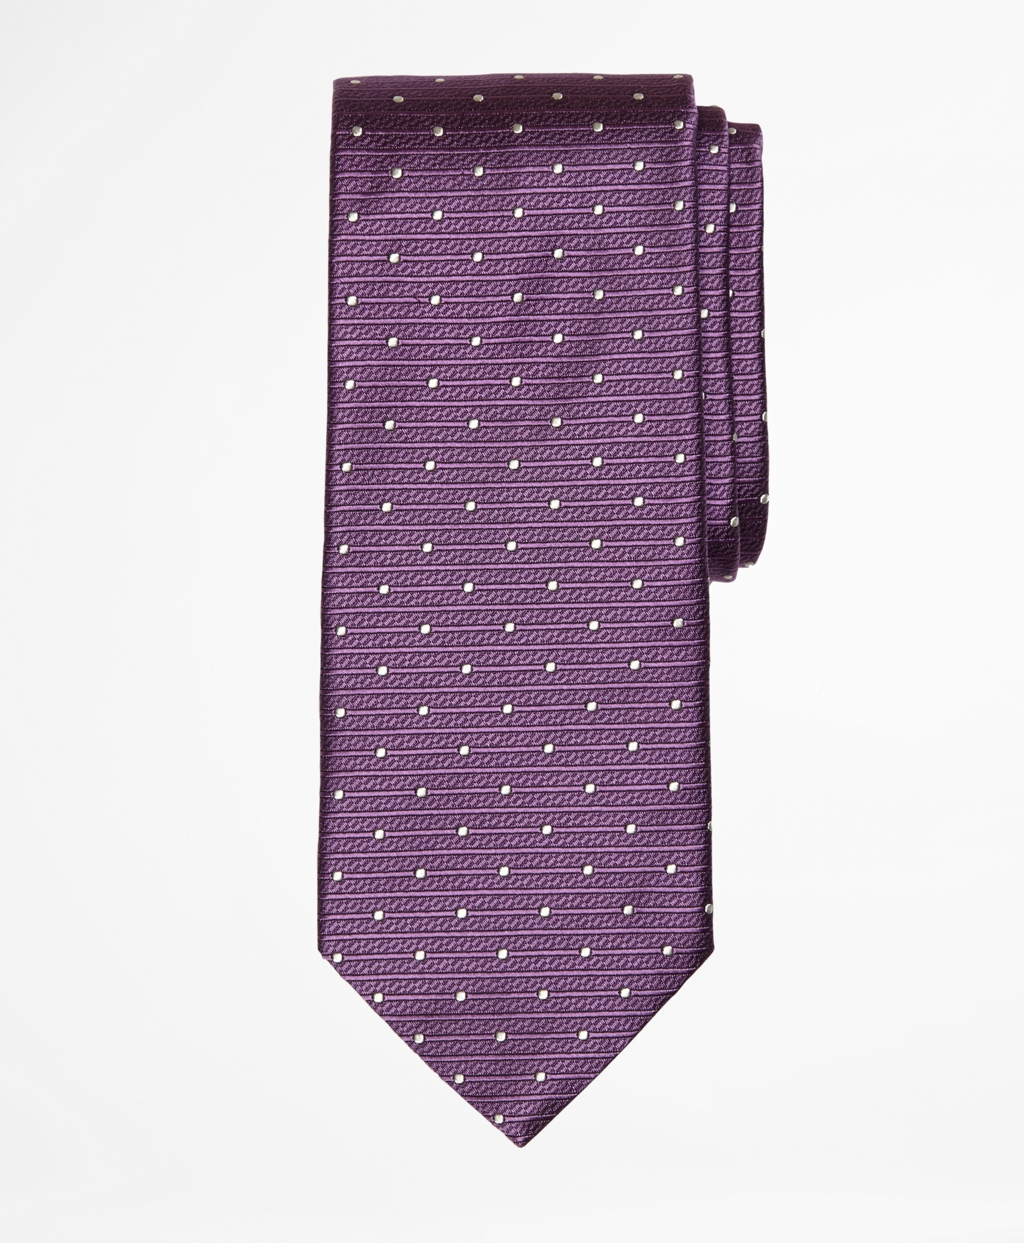 Lyst - Brooks Brothers Polka Dot Tie in Purple for Men